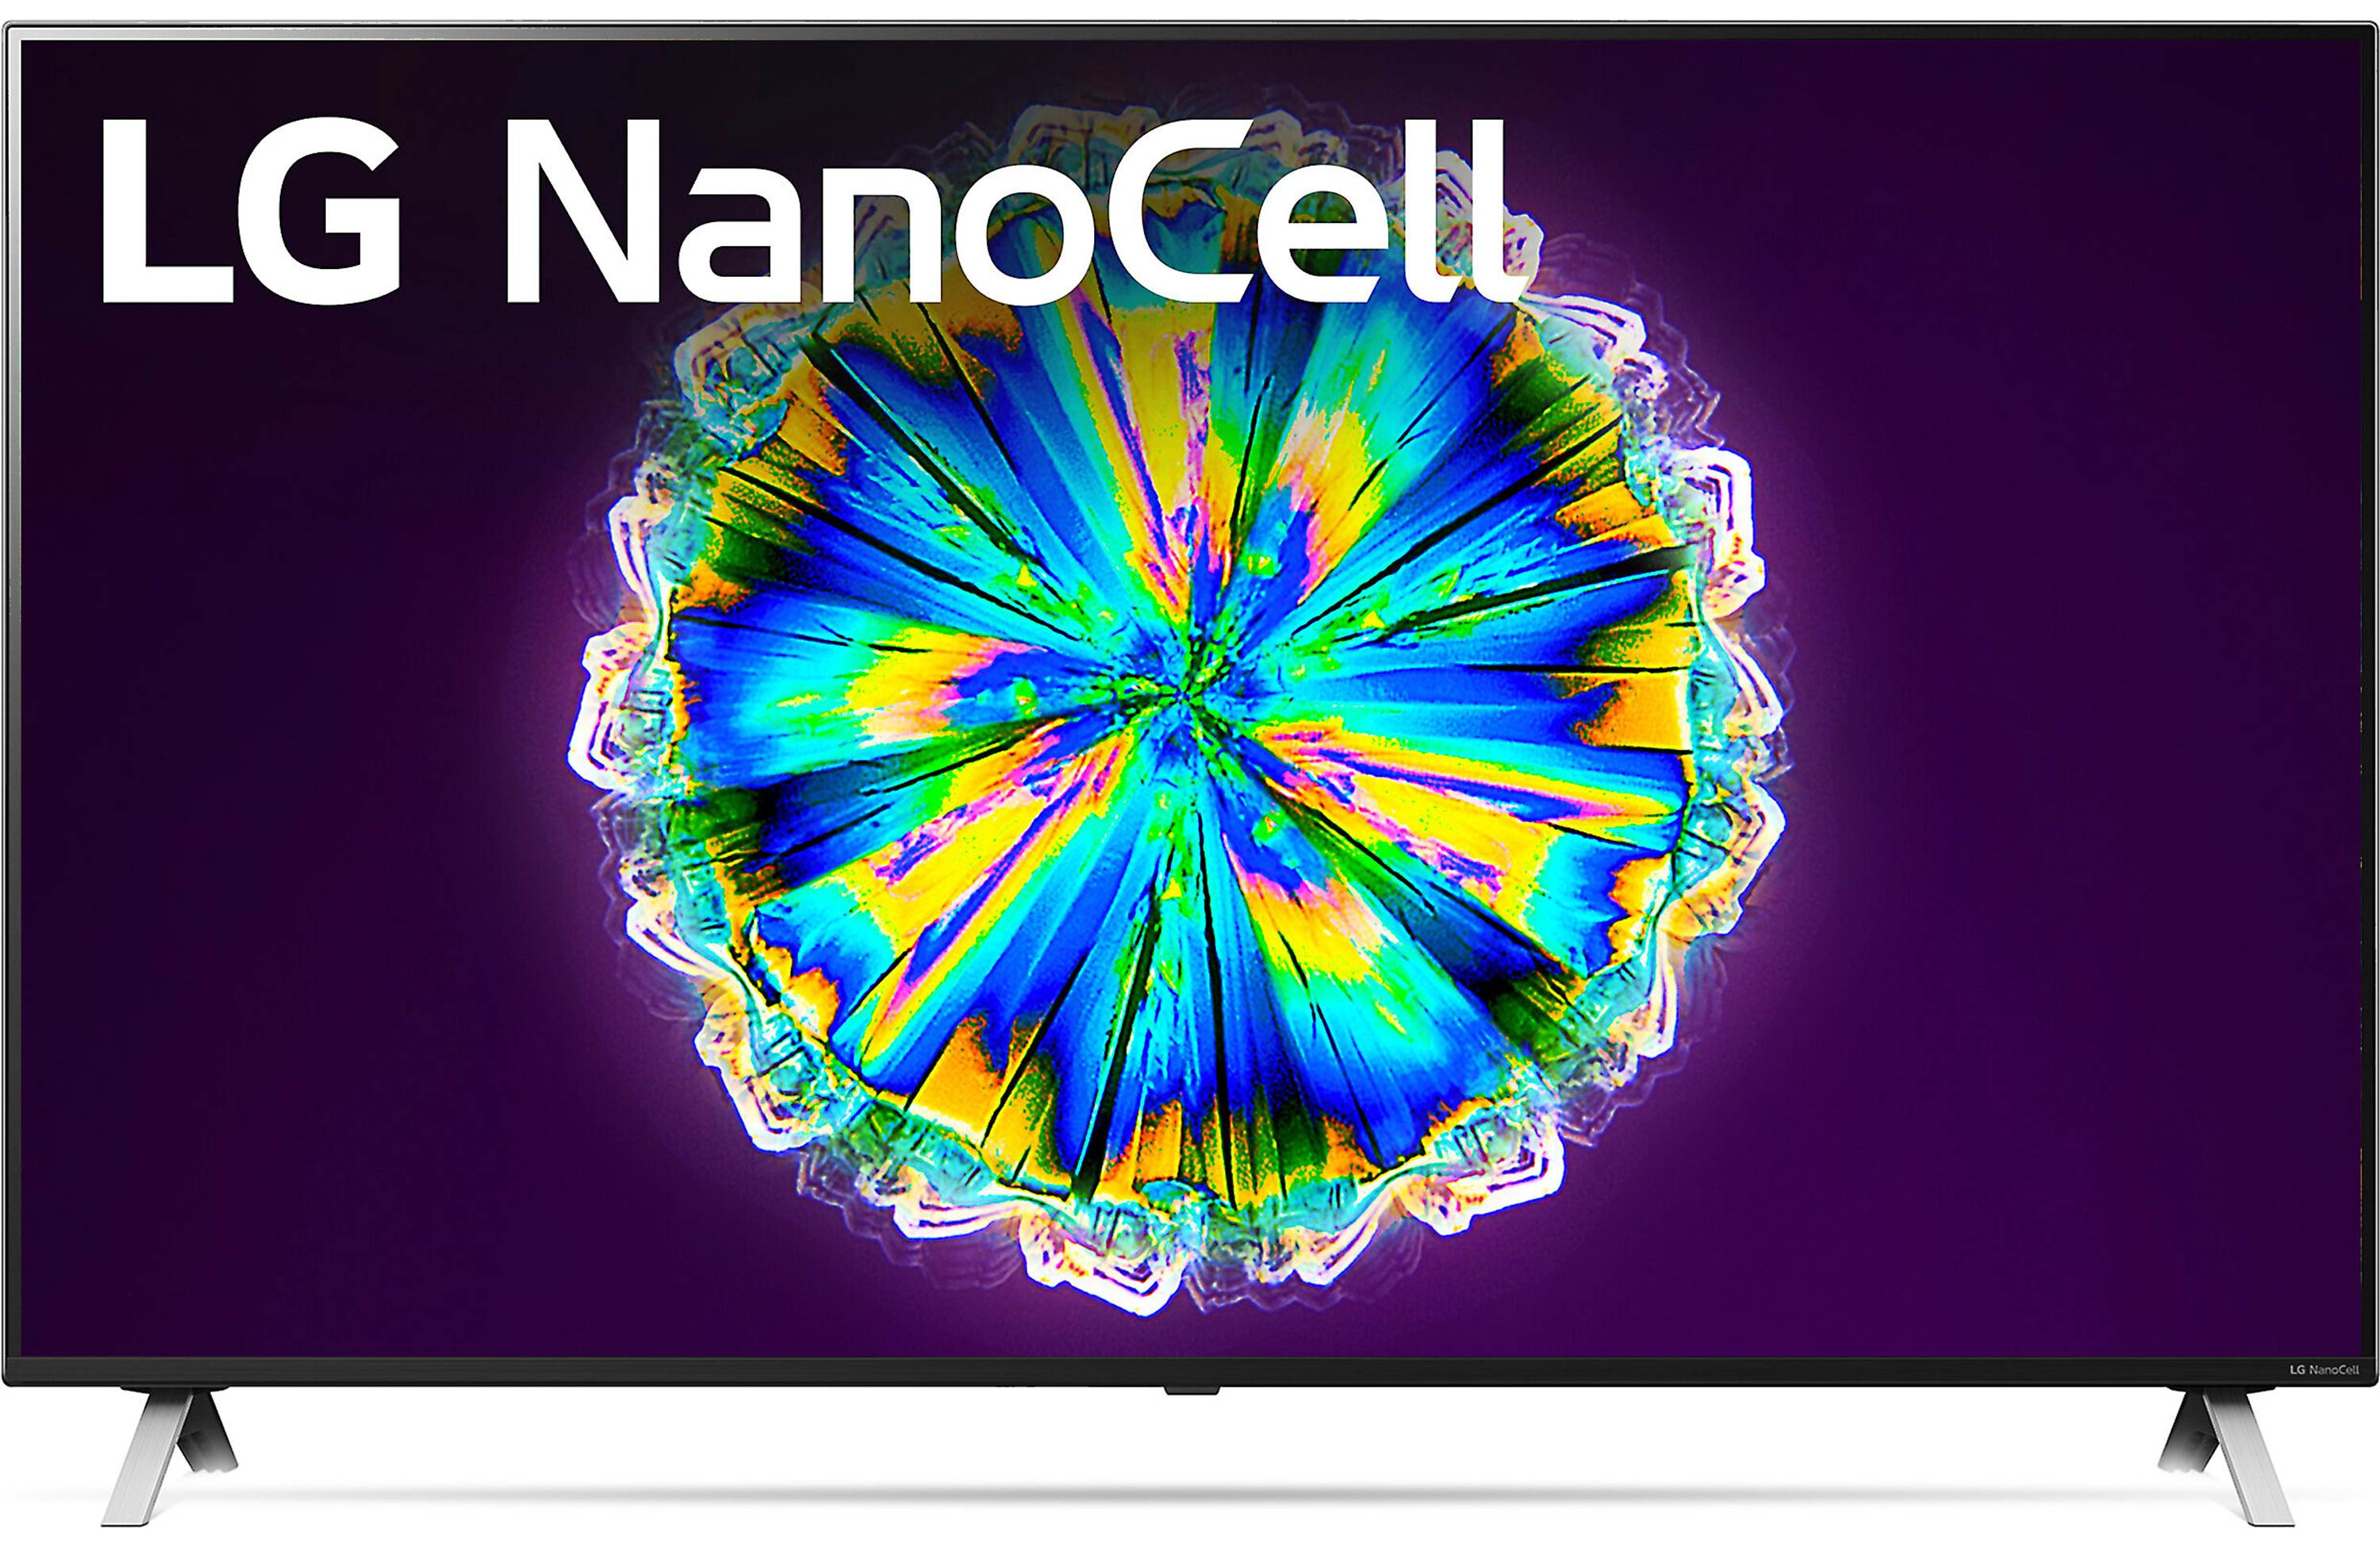 LG 65-inch NanoCell Series Smart 4K UHD TV